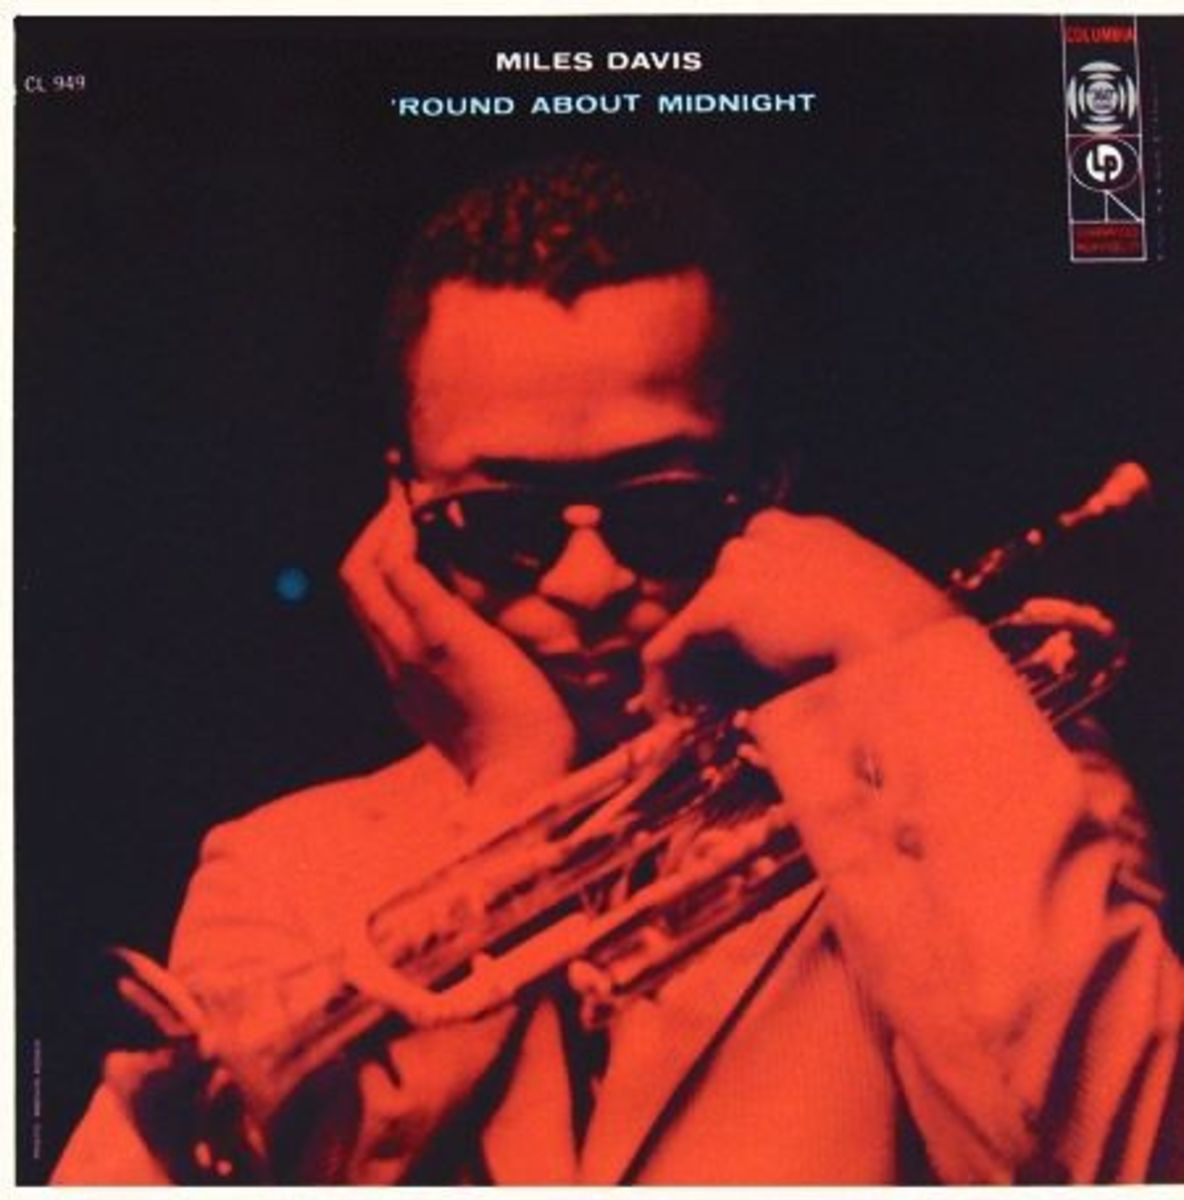 "Miles Davis Round About Midnight Columbia Records CL 949 12"" LP Vinyl Record (1957) Album Cover Photo by Marvin Koner"